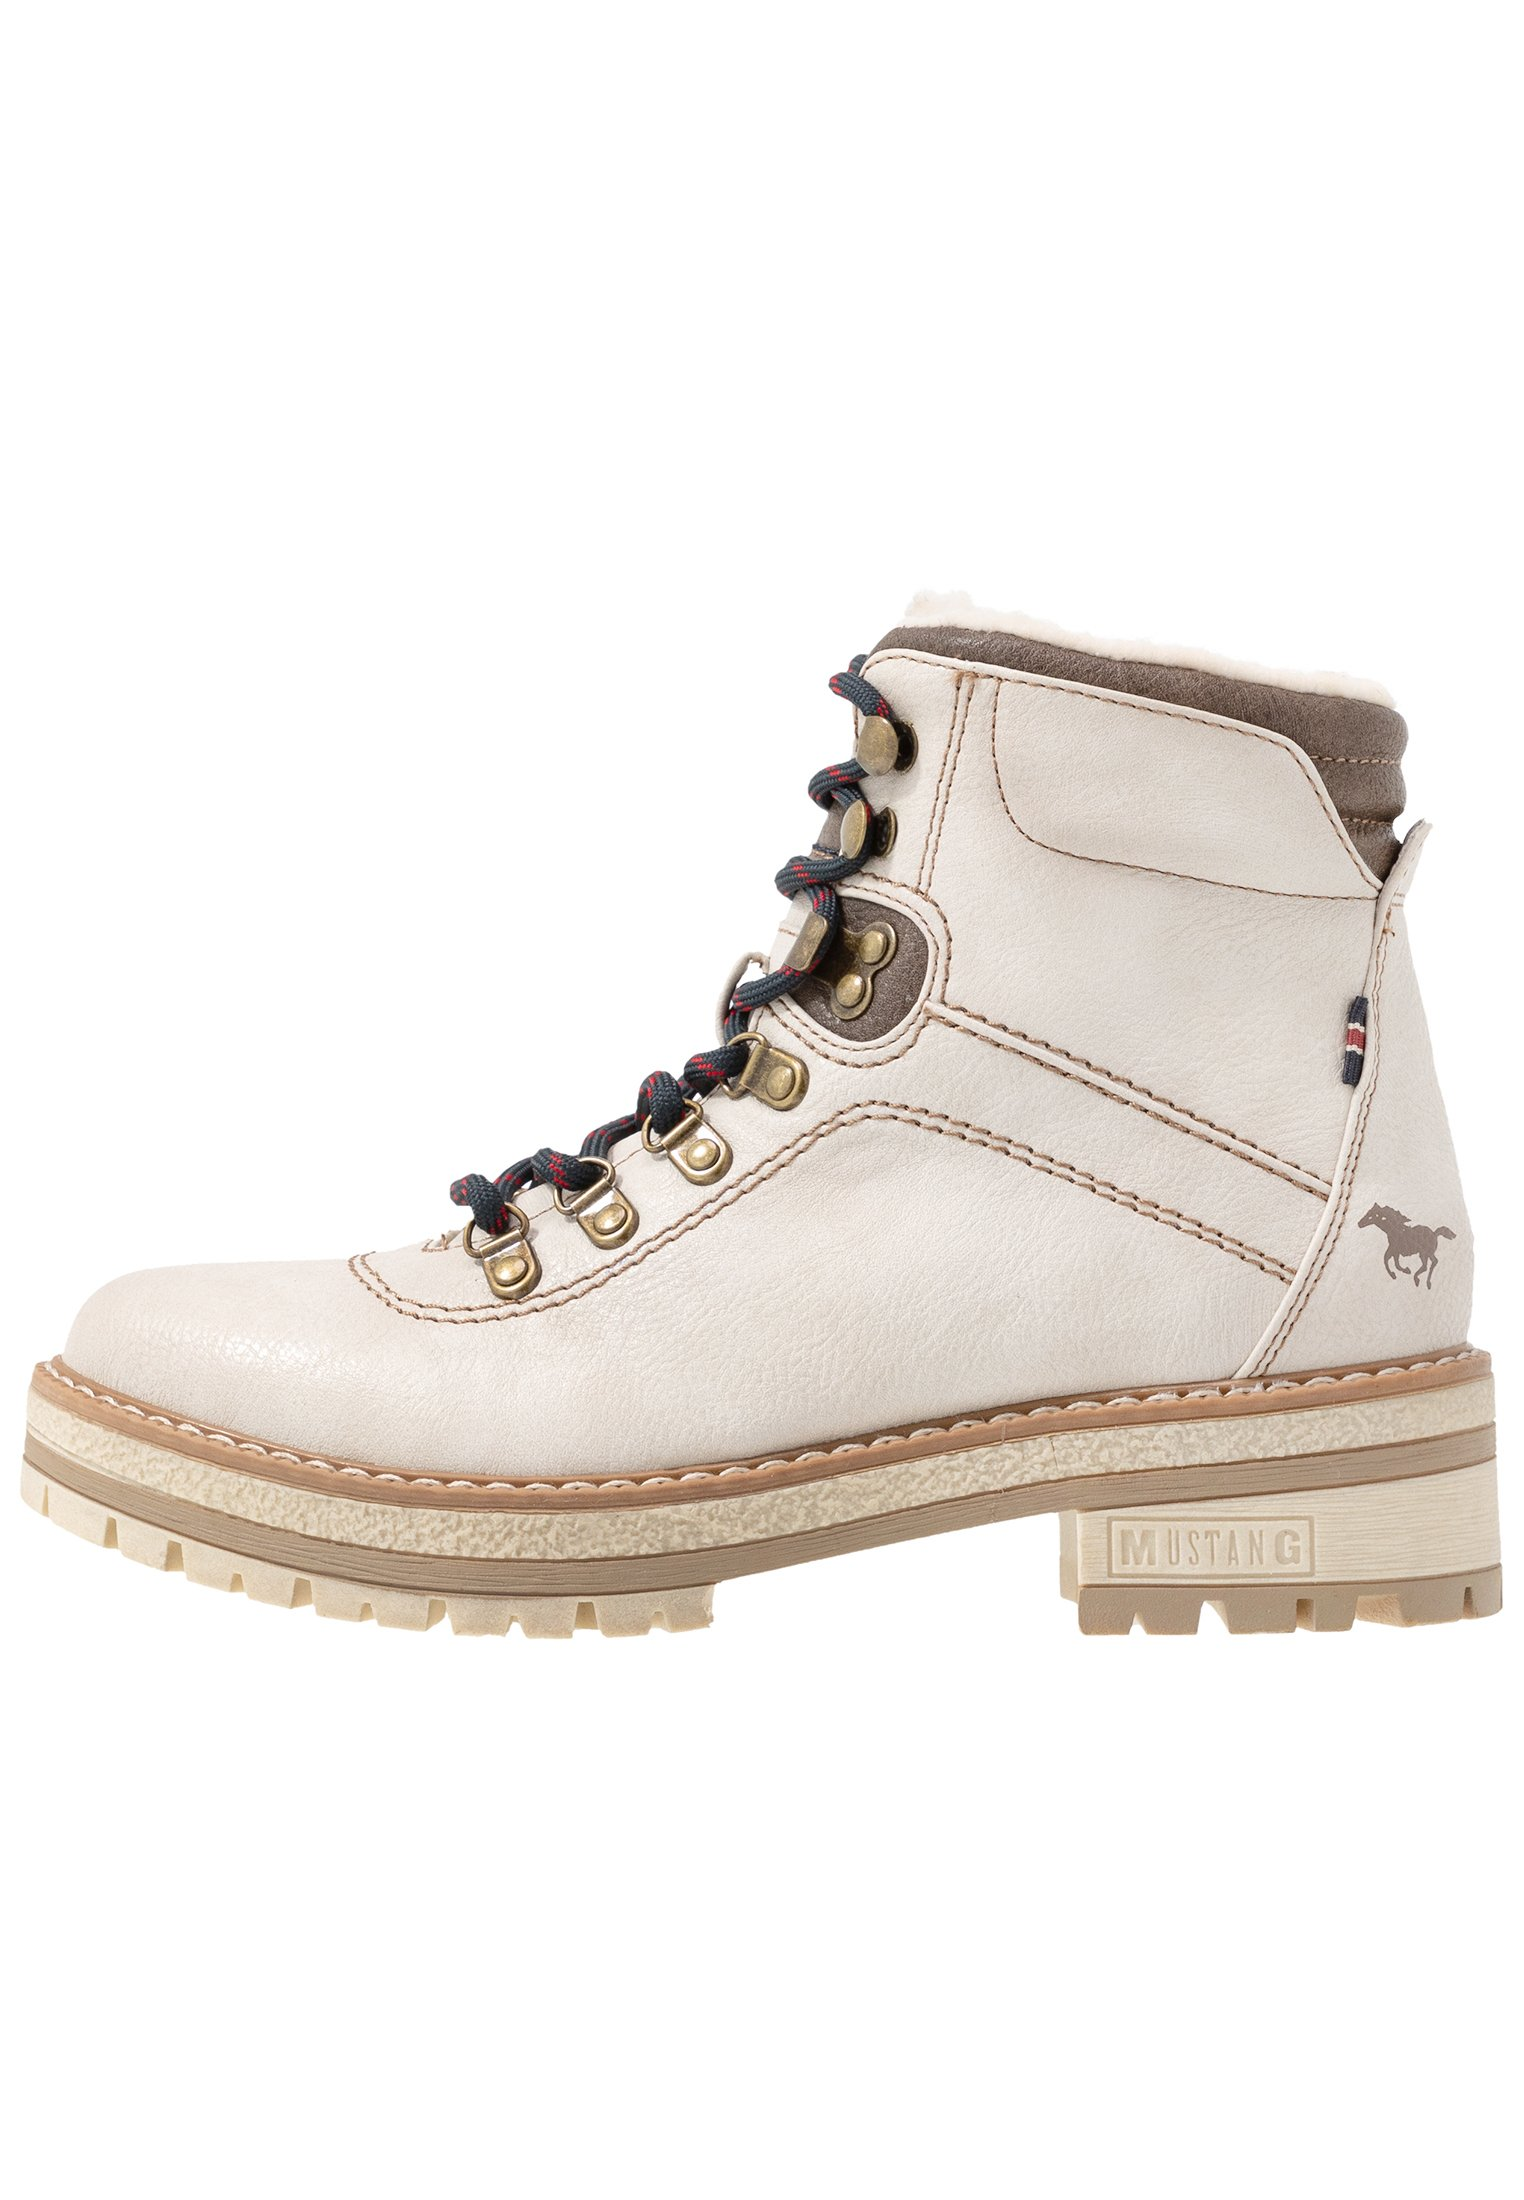 Mustang Ankelboots - Ivory